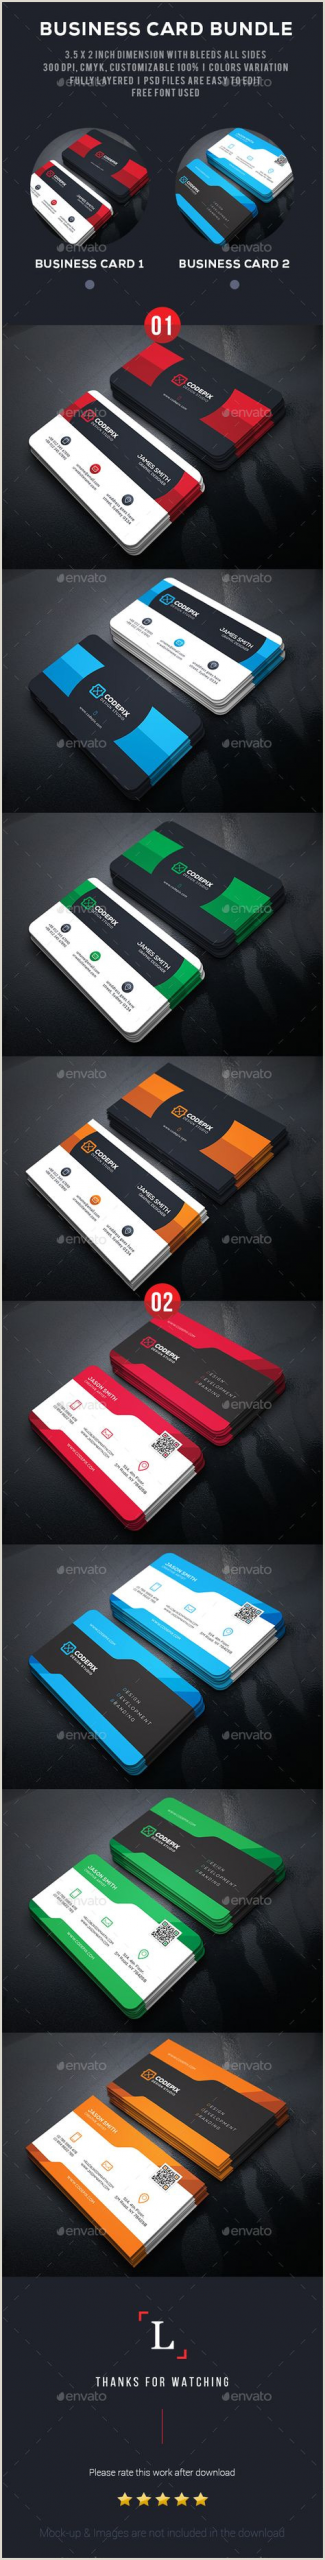 Best Business Cards Nyc 42 Ideas Photography Business Cards Ideas Shape